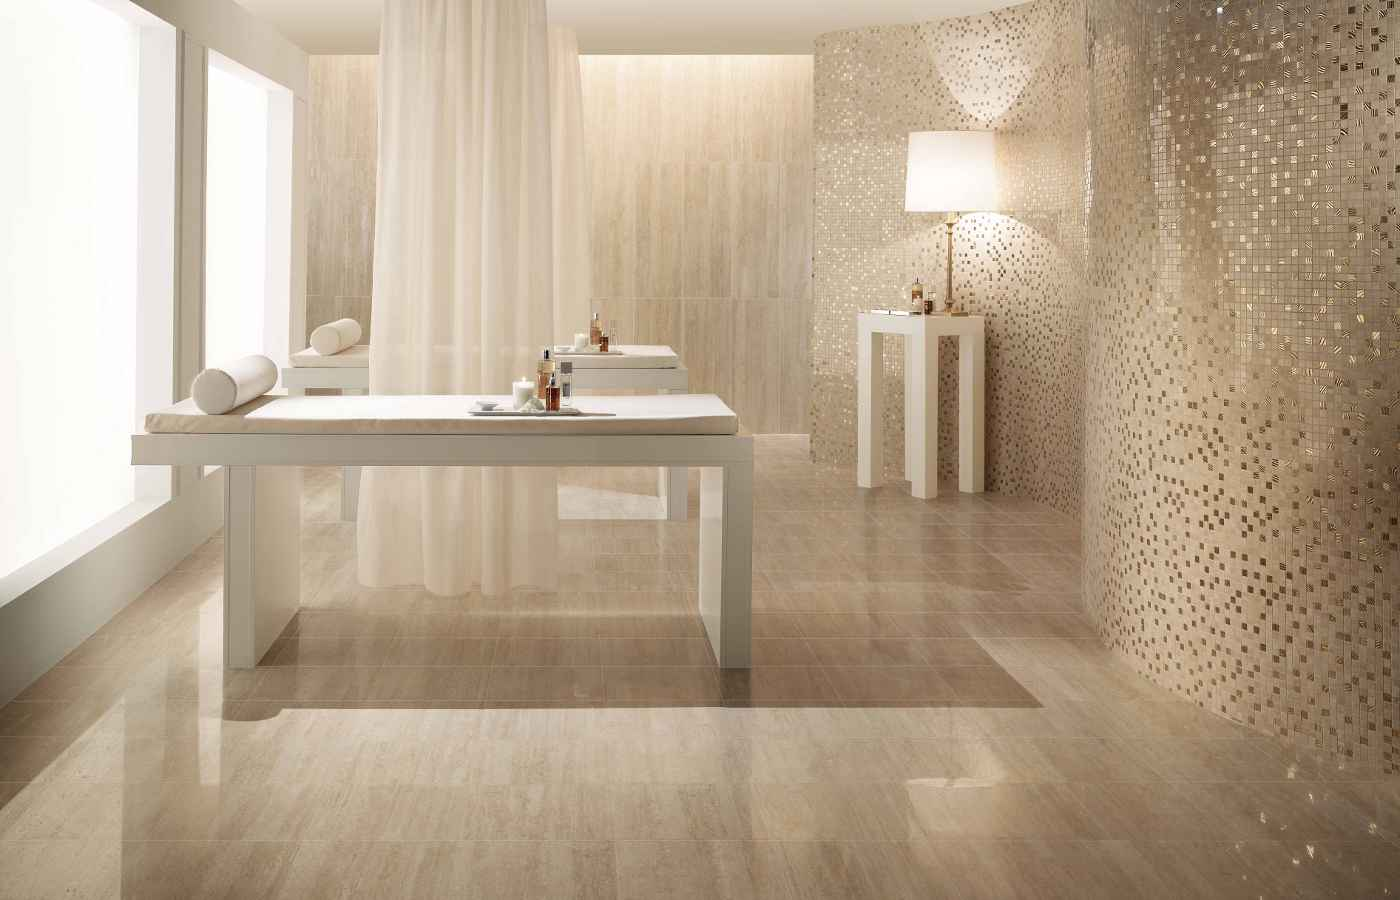 Porcelain tile flooring benefits for Floor tiles images